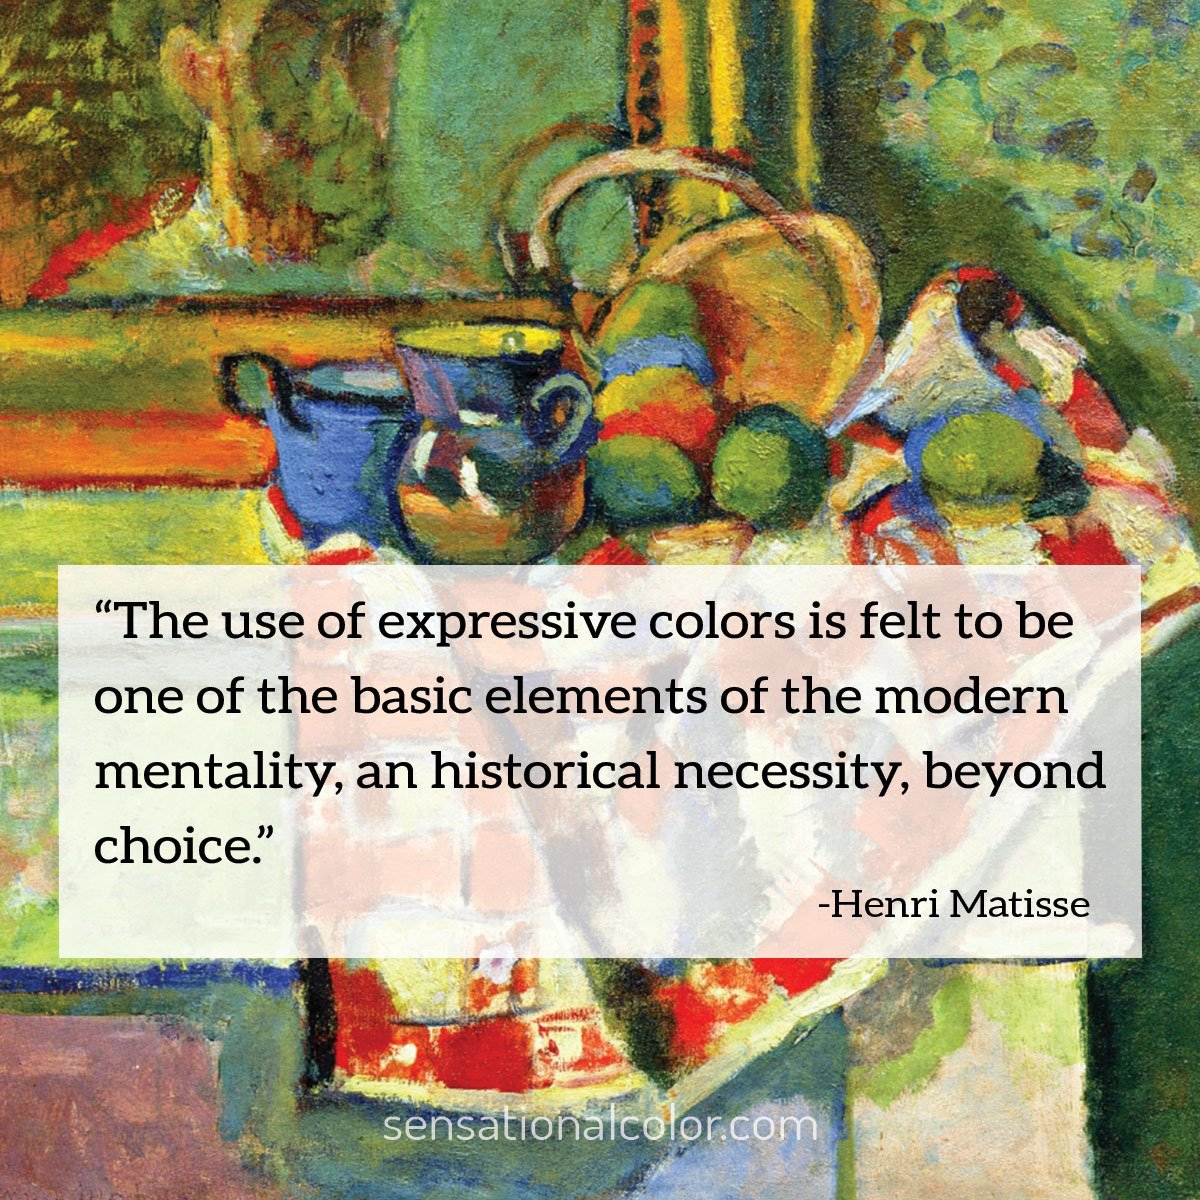 """The use of expressive colors is felt to be one of the basic elements of the modern mentality, an historical necessity, beyond choice."" - Henri Matisse"